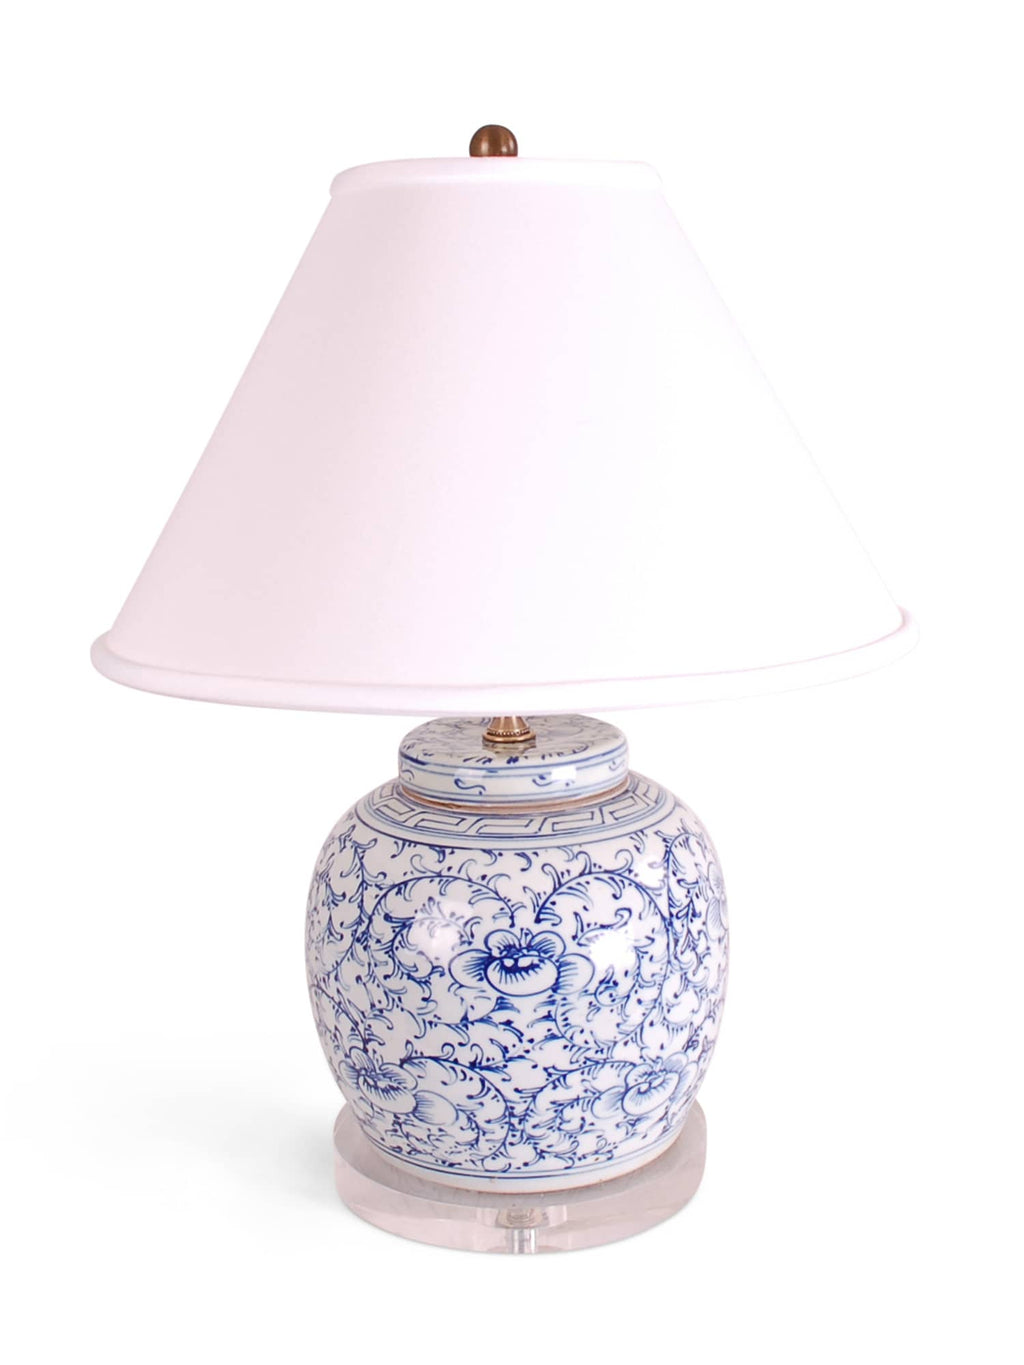 Blue and White Floral Jar Lamp